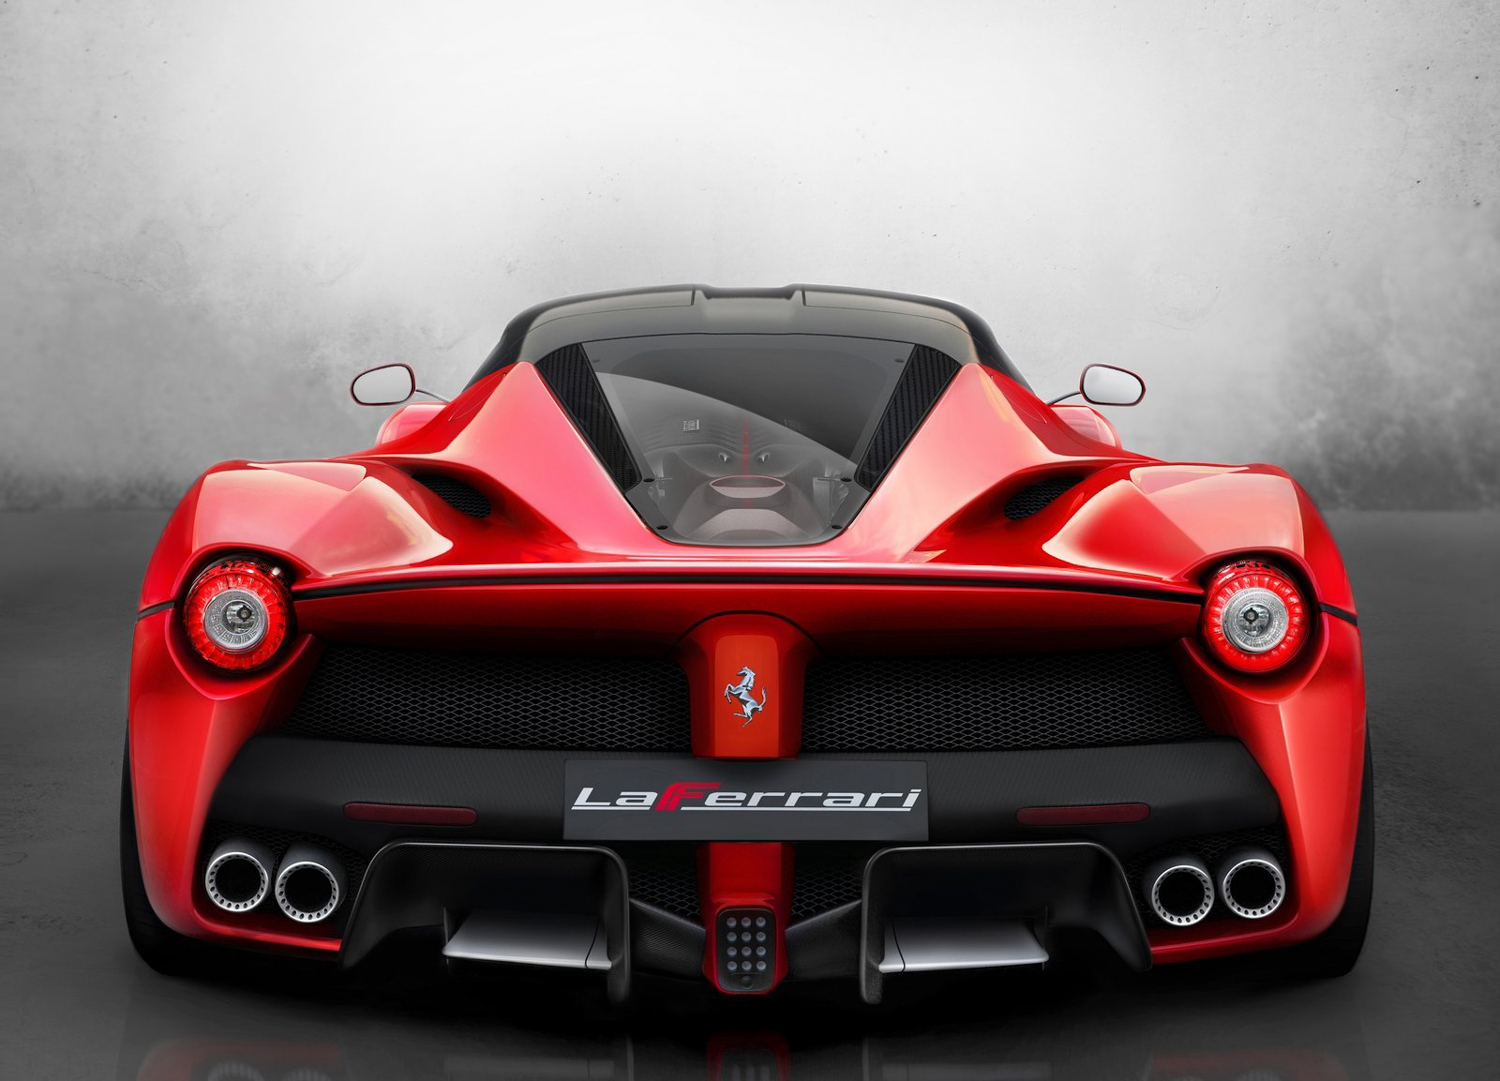 2014 Ferrari LaFerrari front doors up